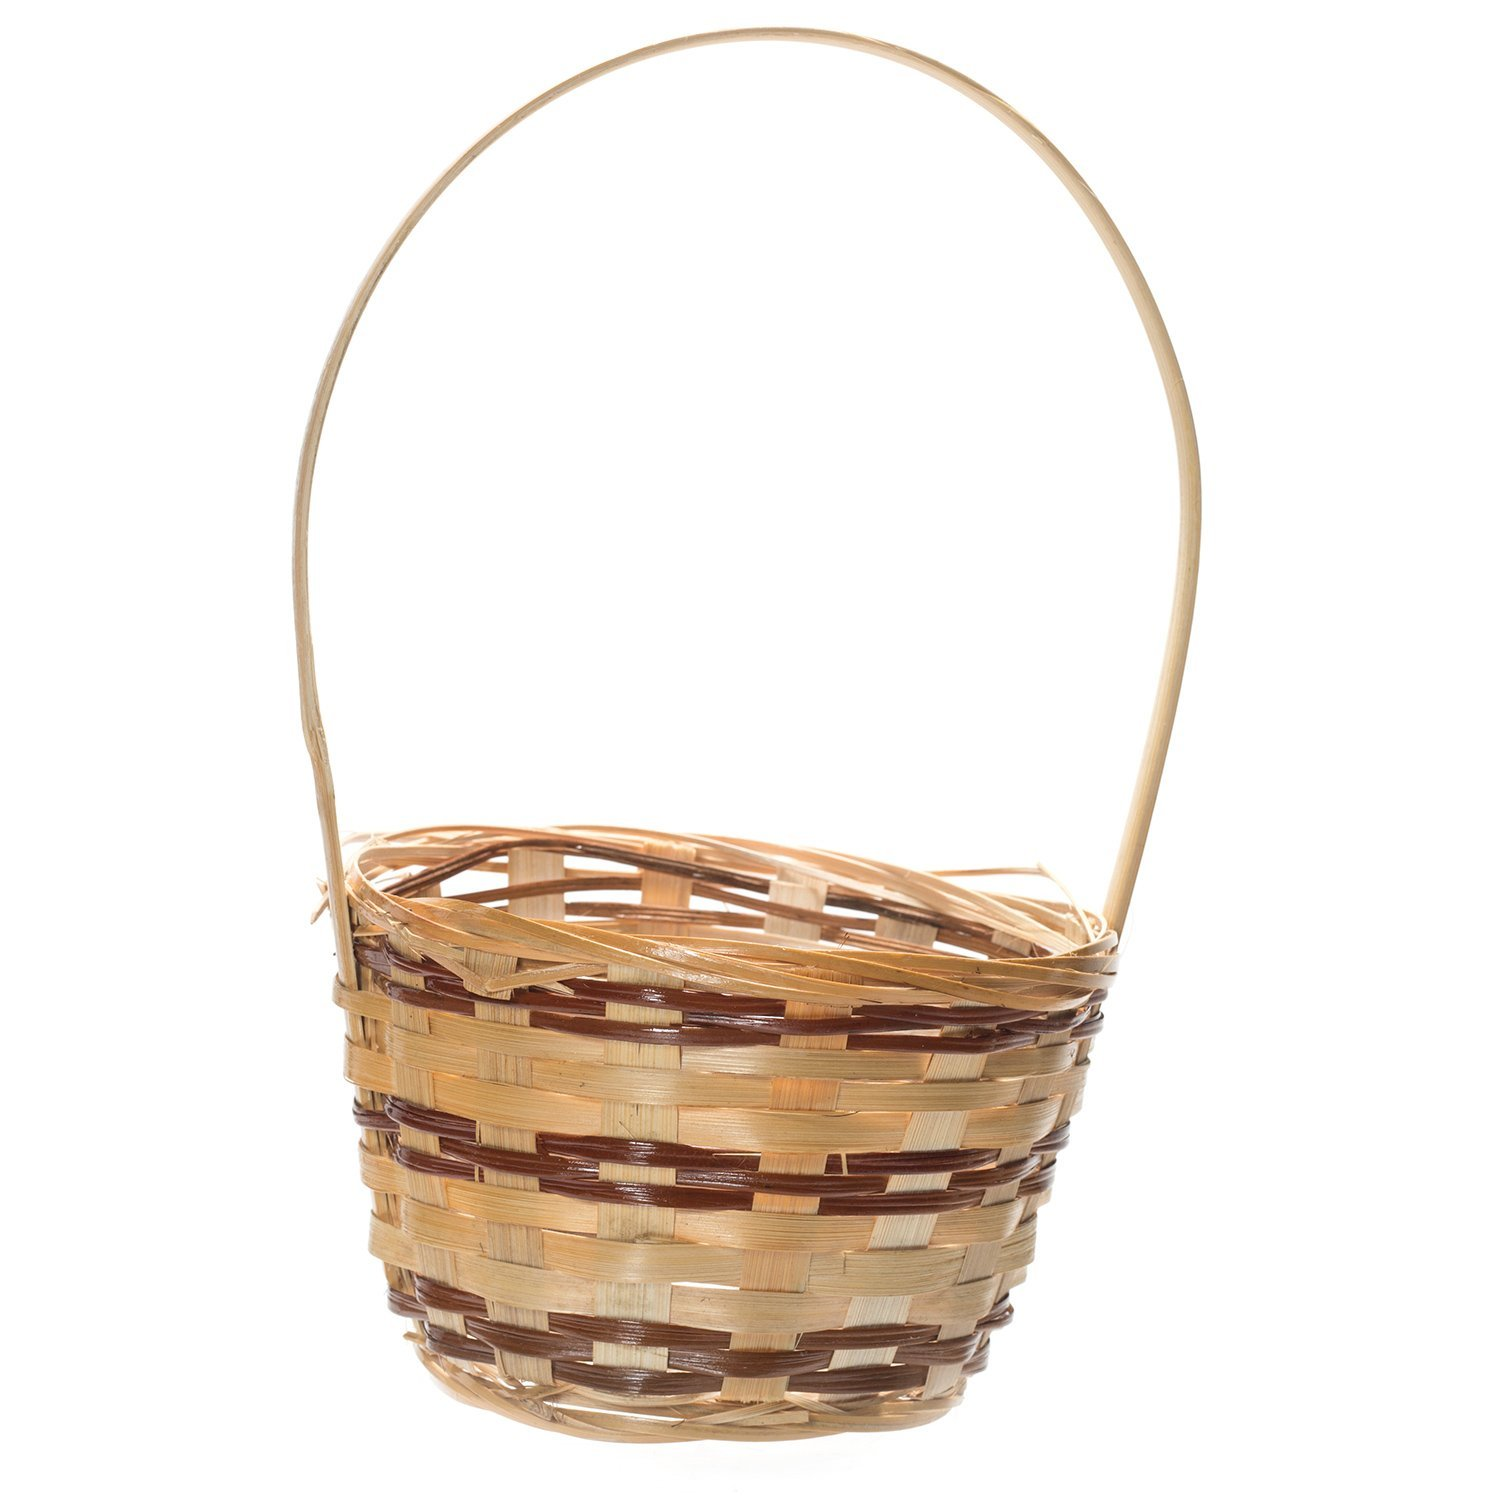 """6"""" Round Natural Wicker Handwoven Gift Arrangement, Fruit or Easter Basket - 4""""x6"""" with Handle (includes Plastic Insert Liner) by Royal Imports"""